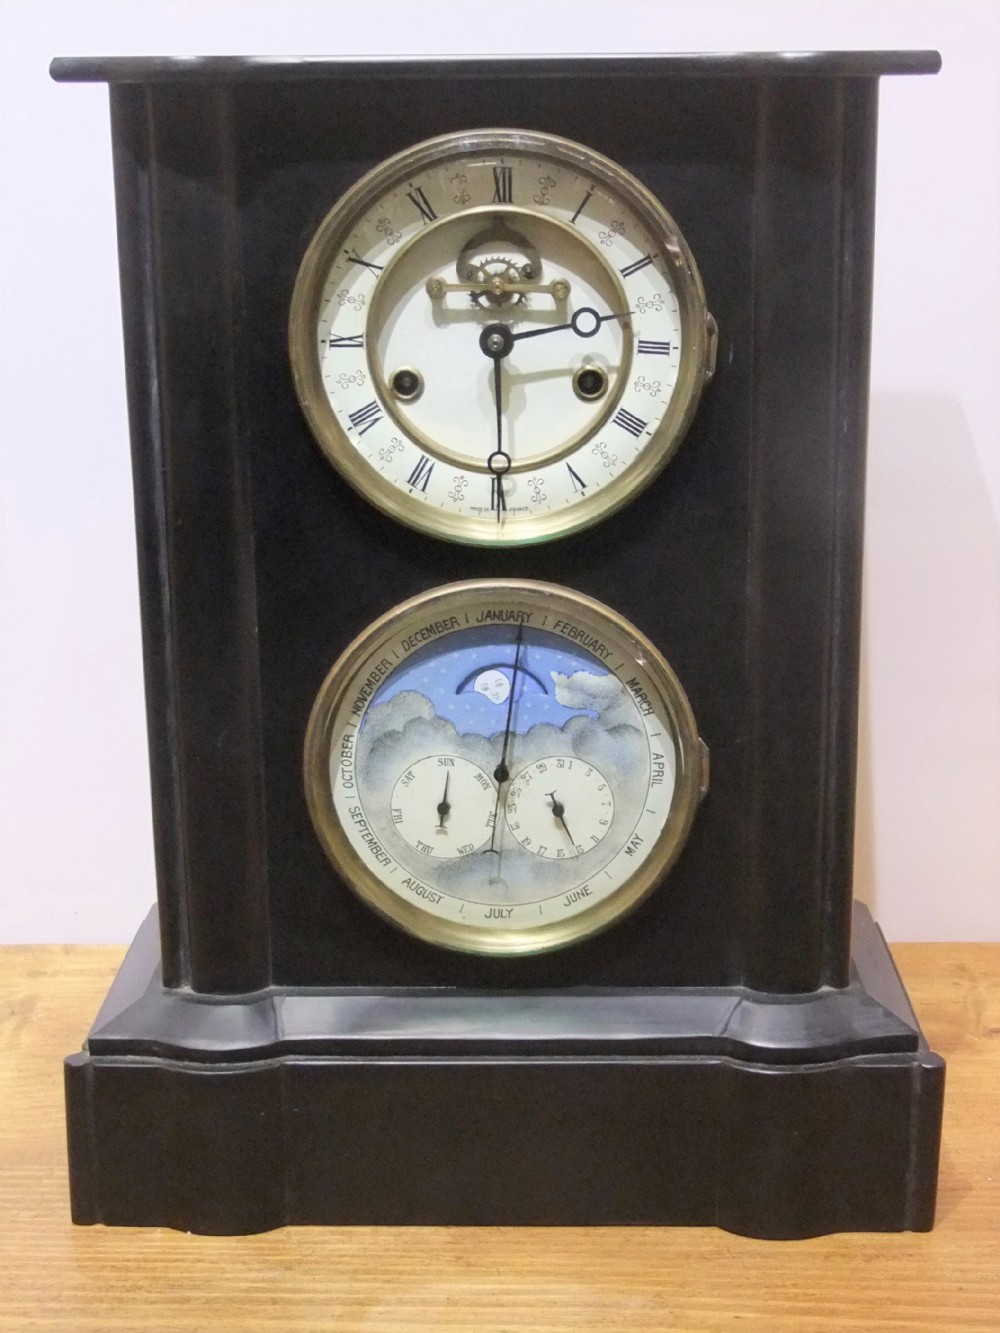 19th c french perpetual calendar clock with moon phase c1880 for the english market